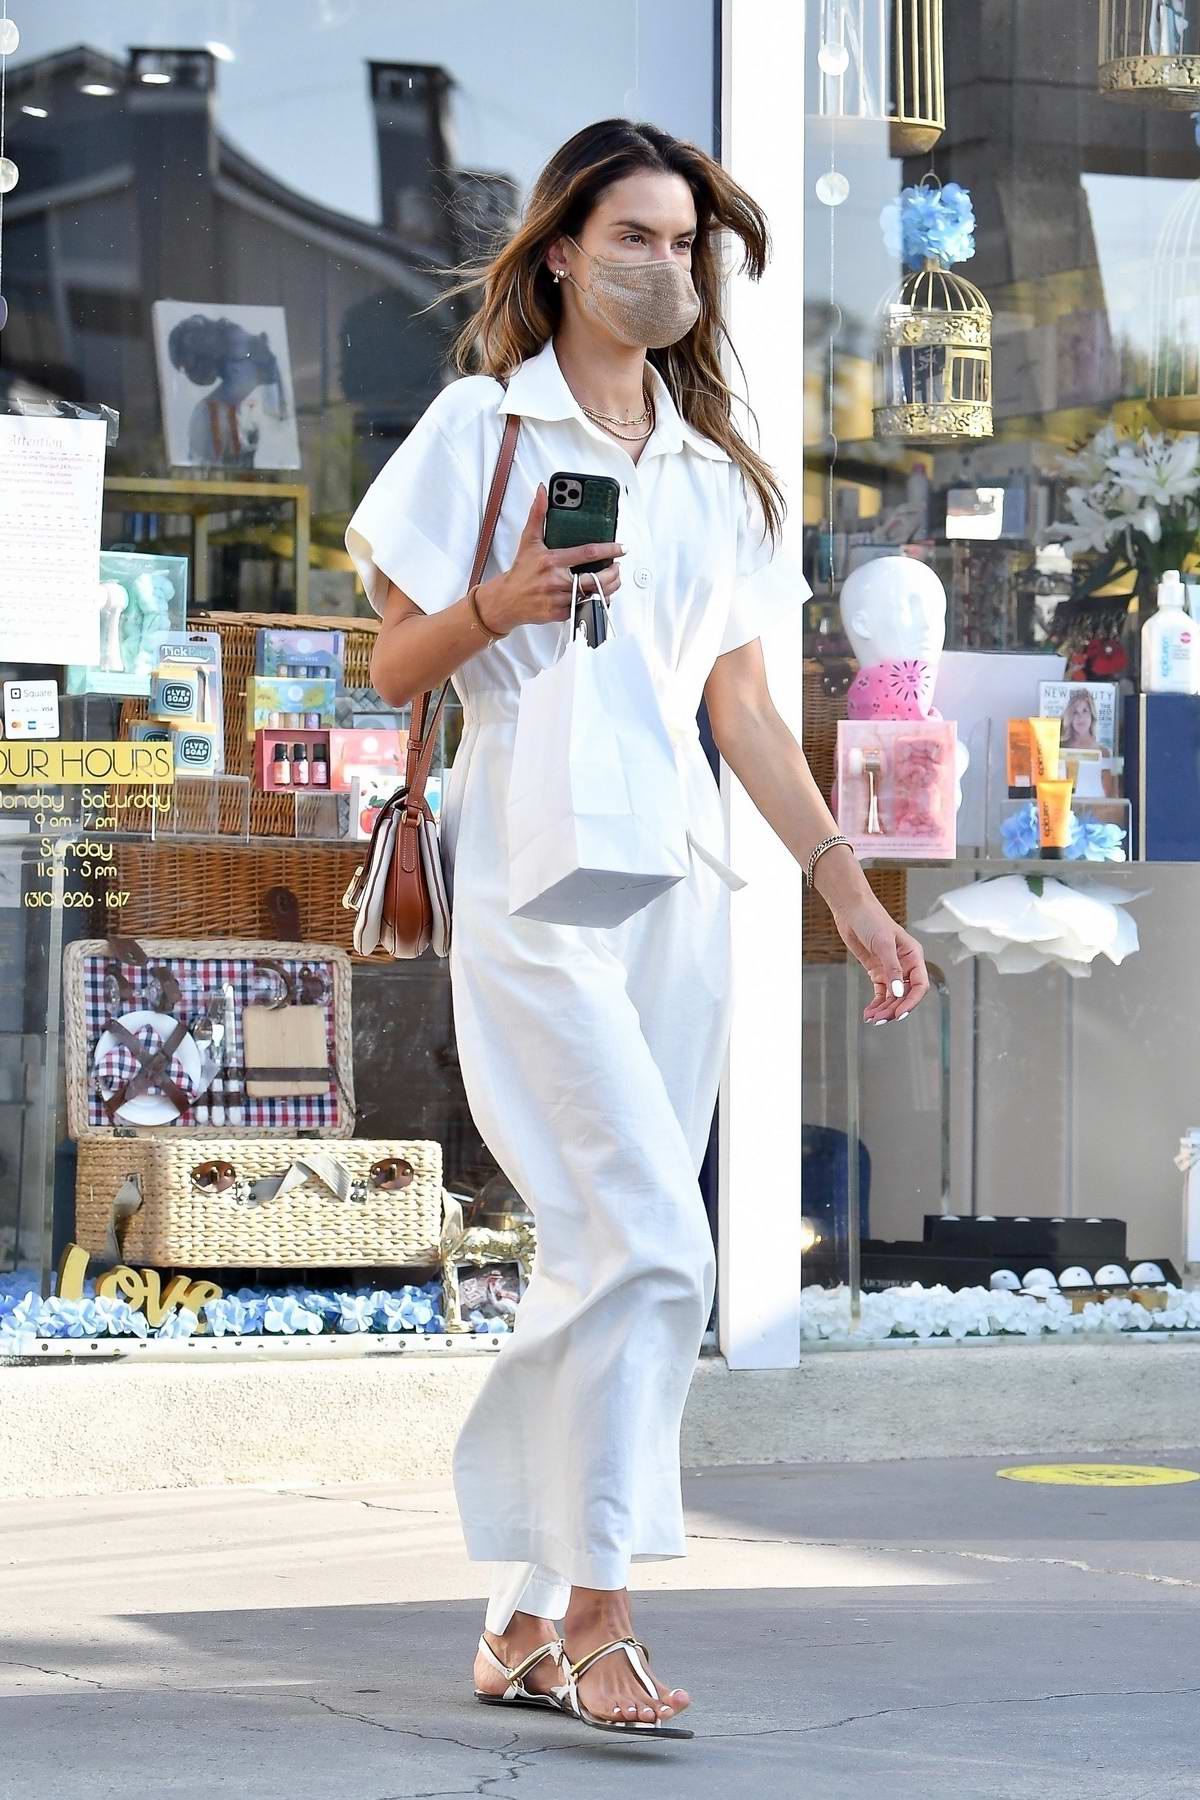 Alessandra Ambrosio looks great in a white jumpsuit as she steps out for some shopping before grabbing dinner to-go in Brentwood, California